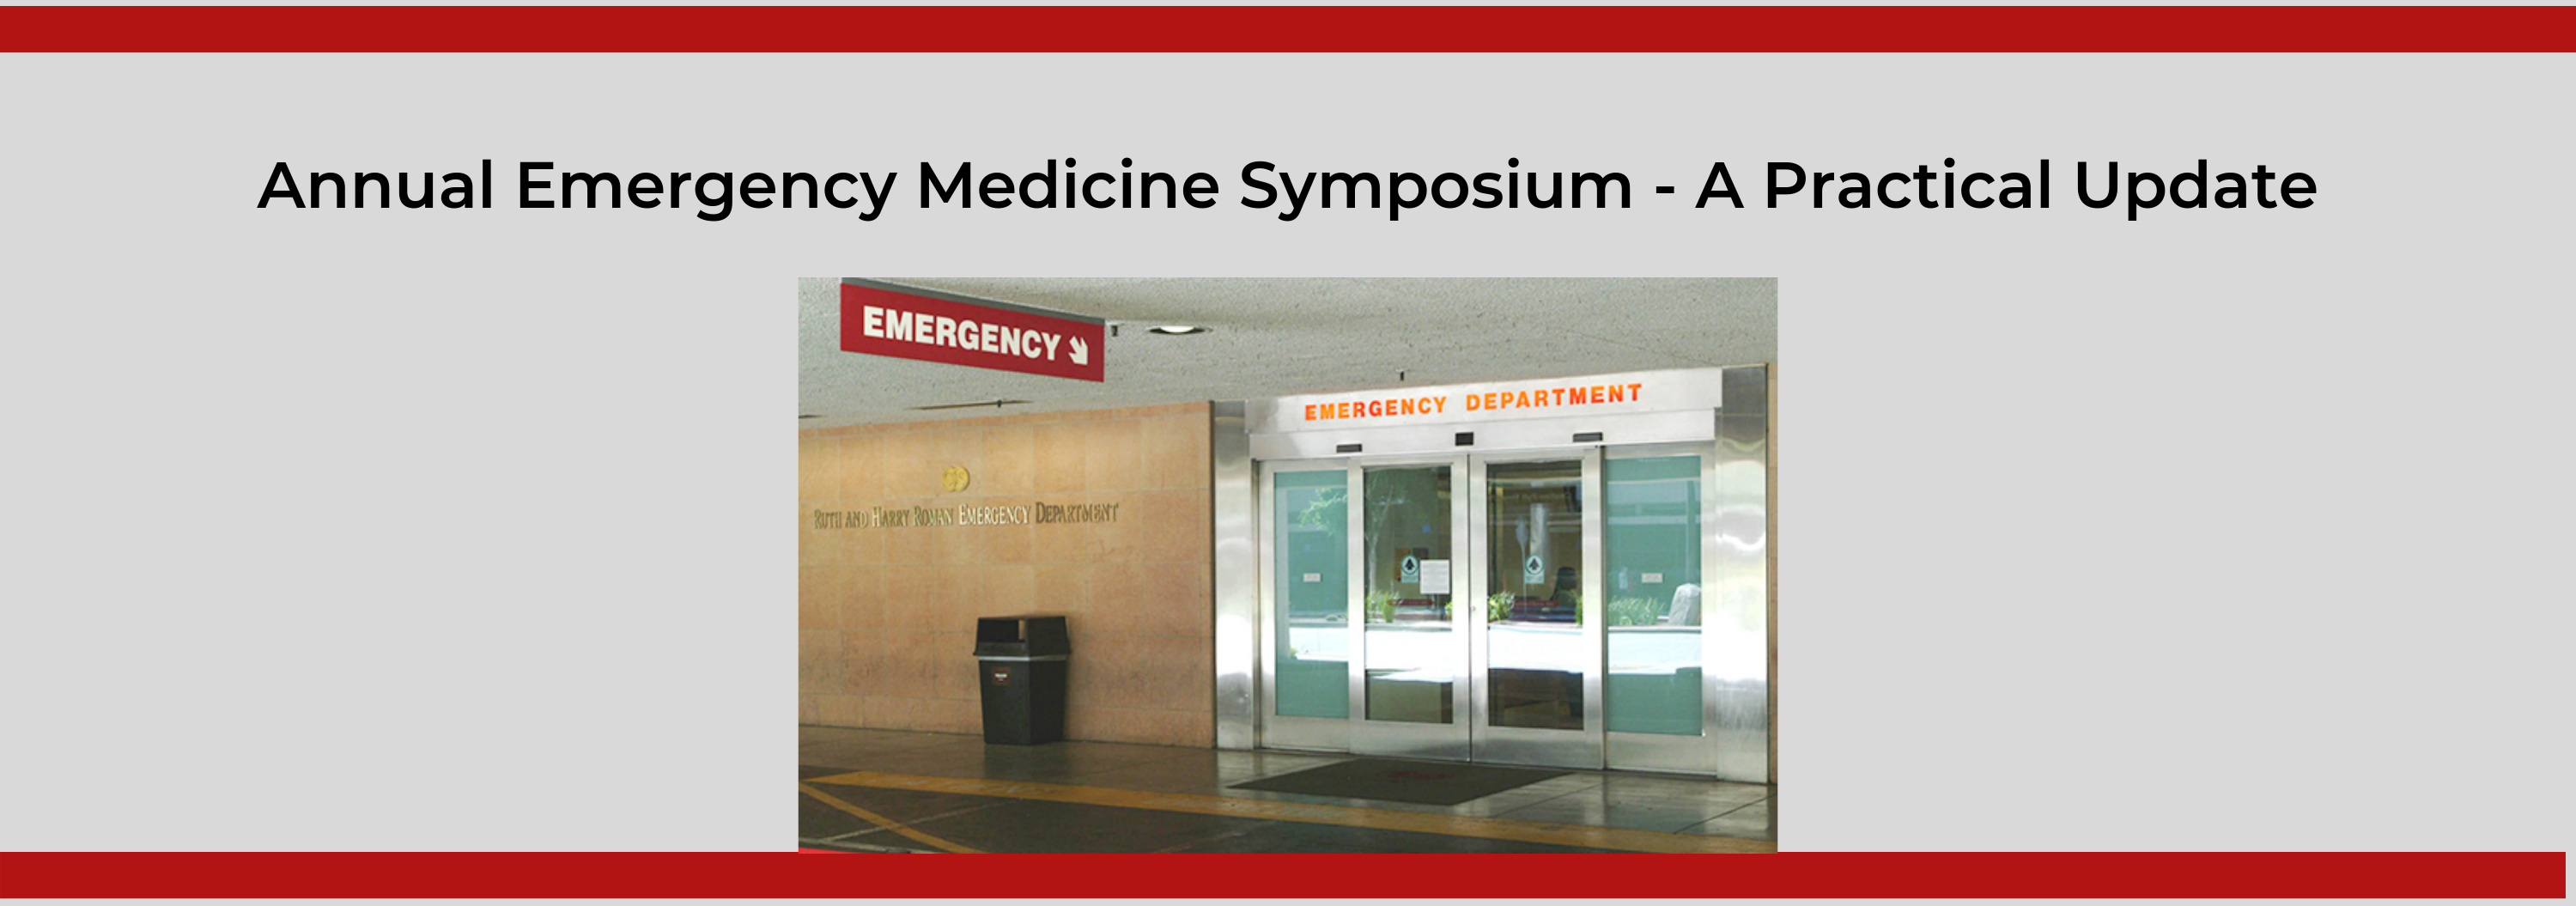 17th Annual Emergency Medicine Symposium - A Practical Update Banner